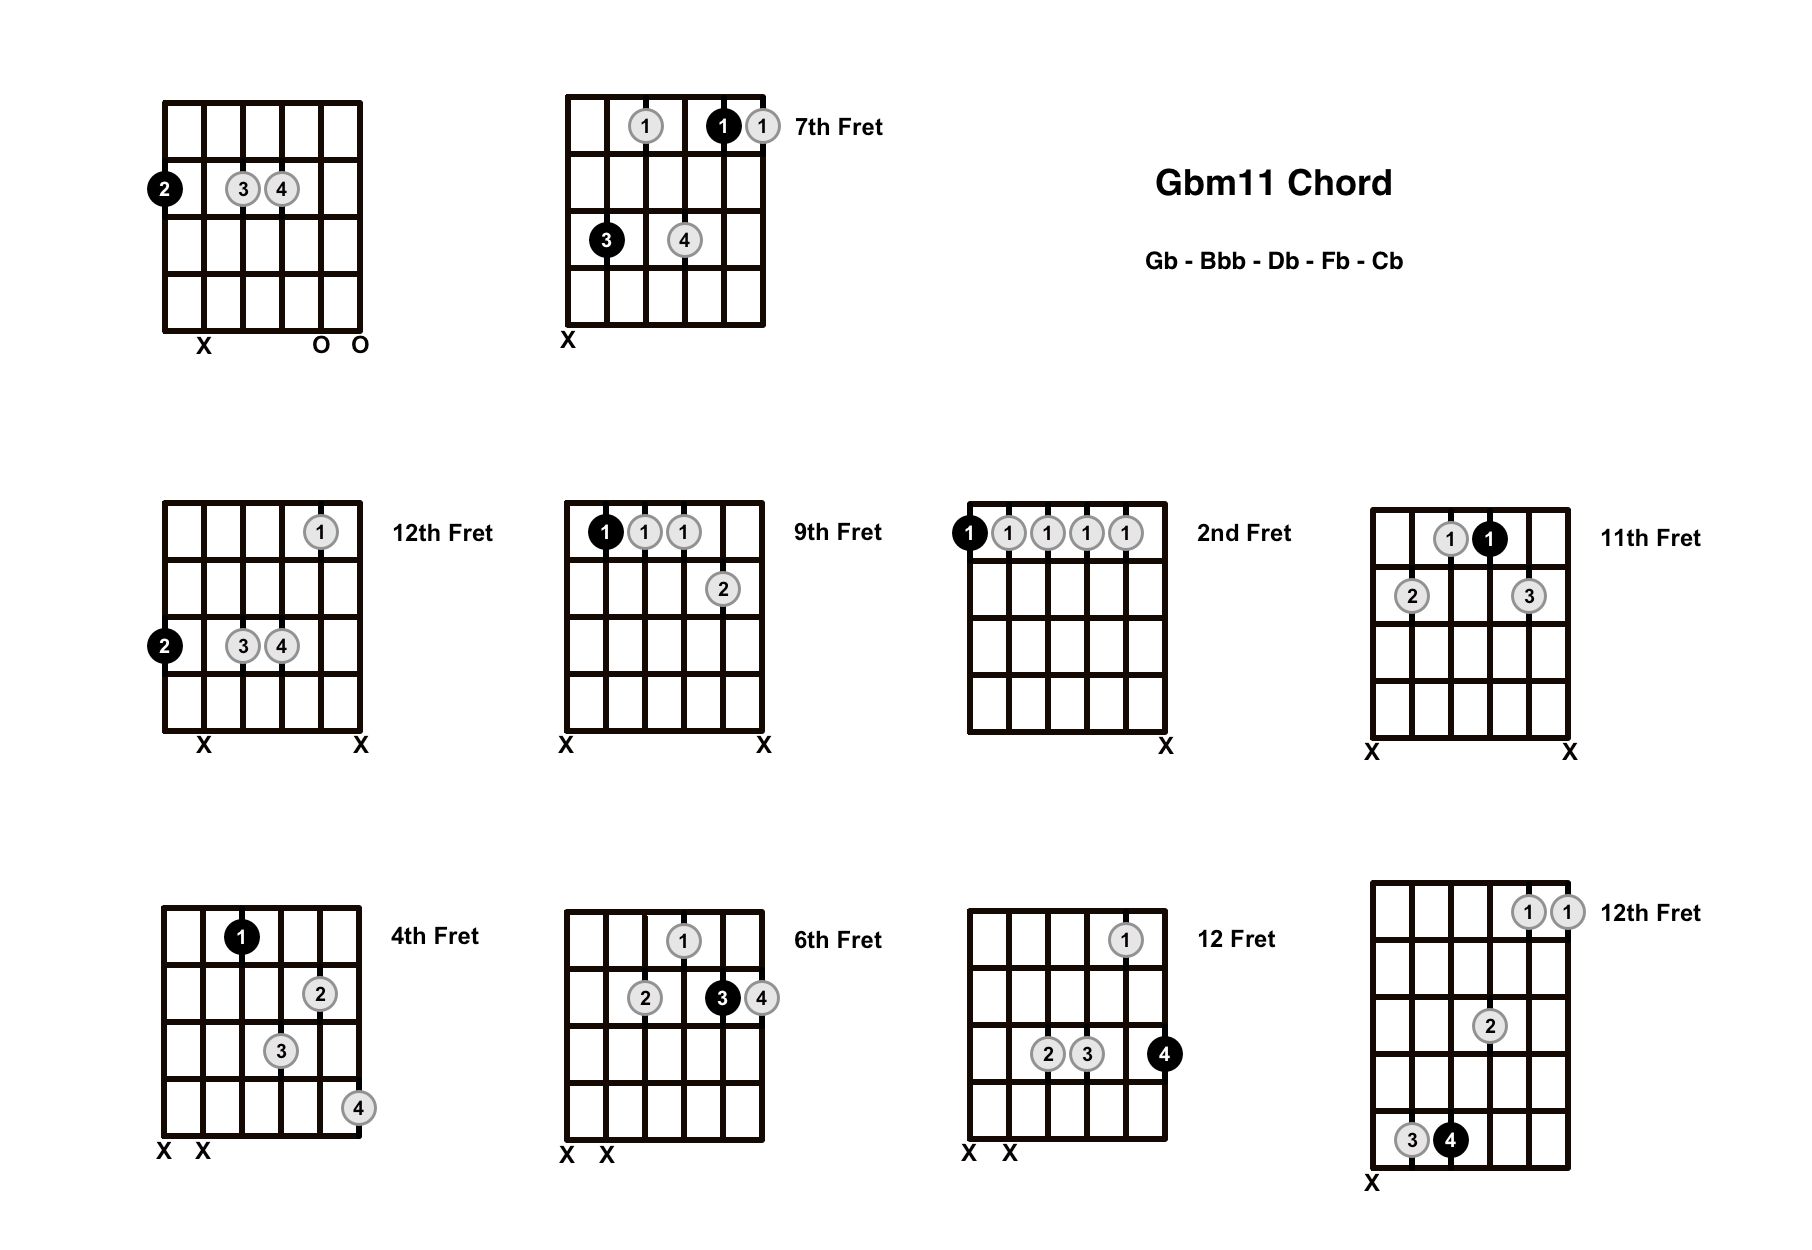 Gbm11 Chord On The Guitar (G Flat minor 11) – Diagrams, Finger Positions and Theory